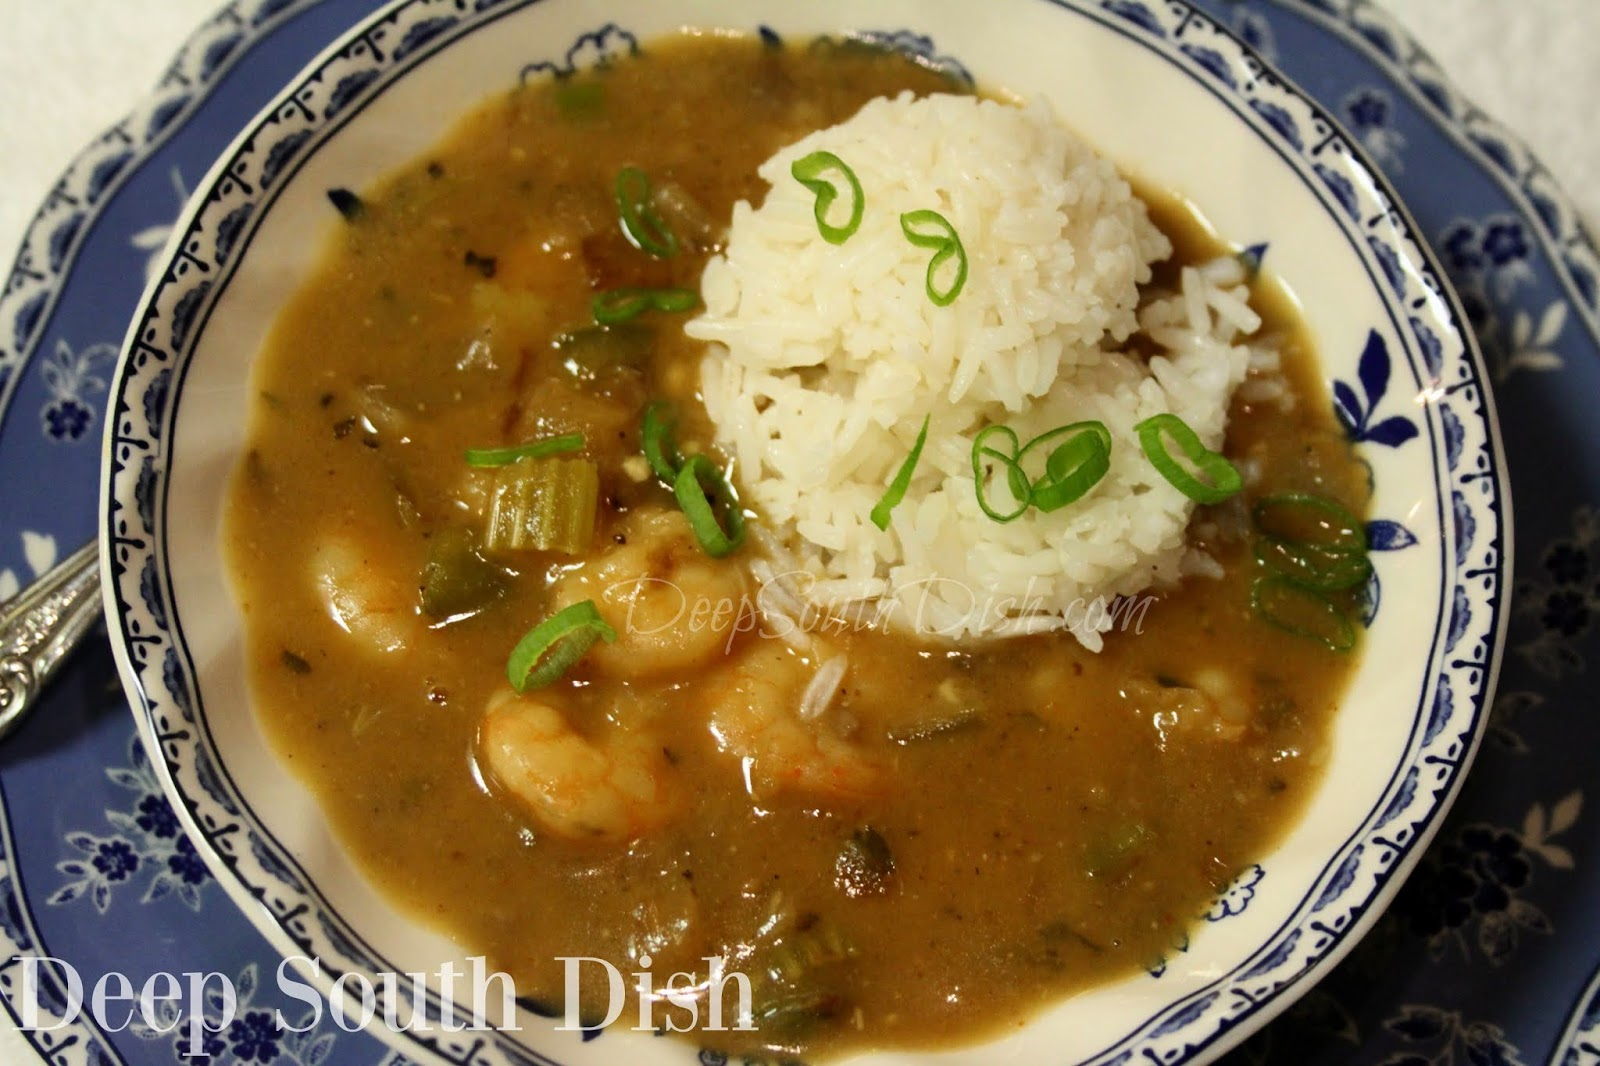 Deep South Dish Super Easy Shortcut Shrimp Etouffee